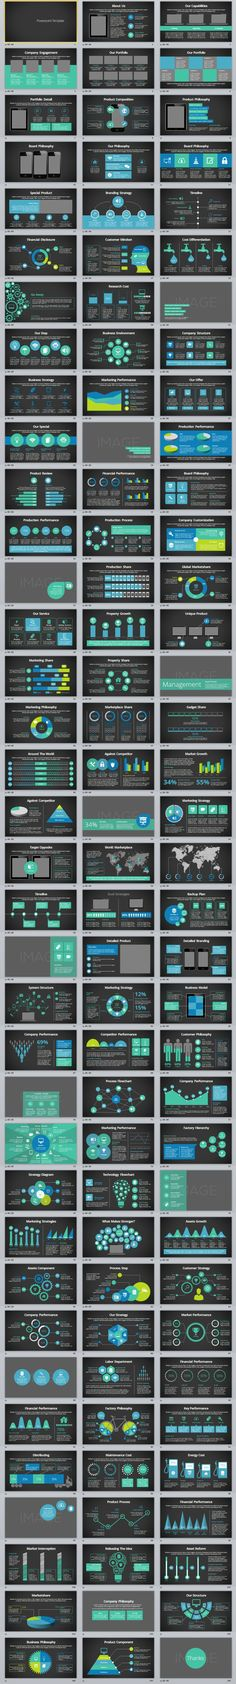 108+ infographics charts PowerPoint template #powerpoint #templates #presentation #animation #backgrounds #pptwork.com #annual #report #business #company #design #creative #slide #infographic #chart #themes #ppt #pptx #slideshow